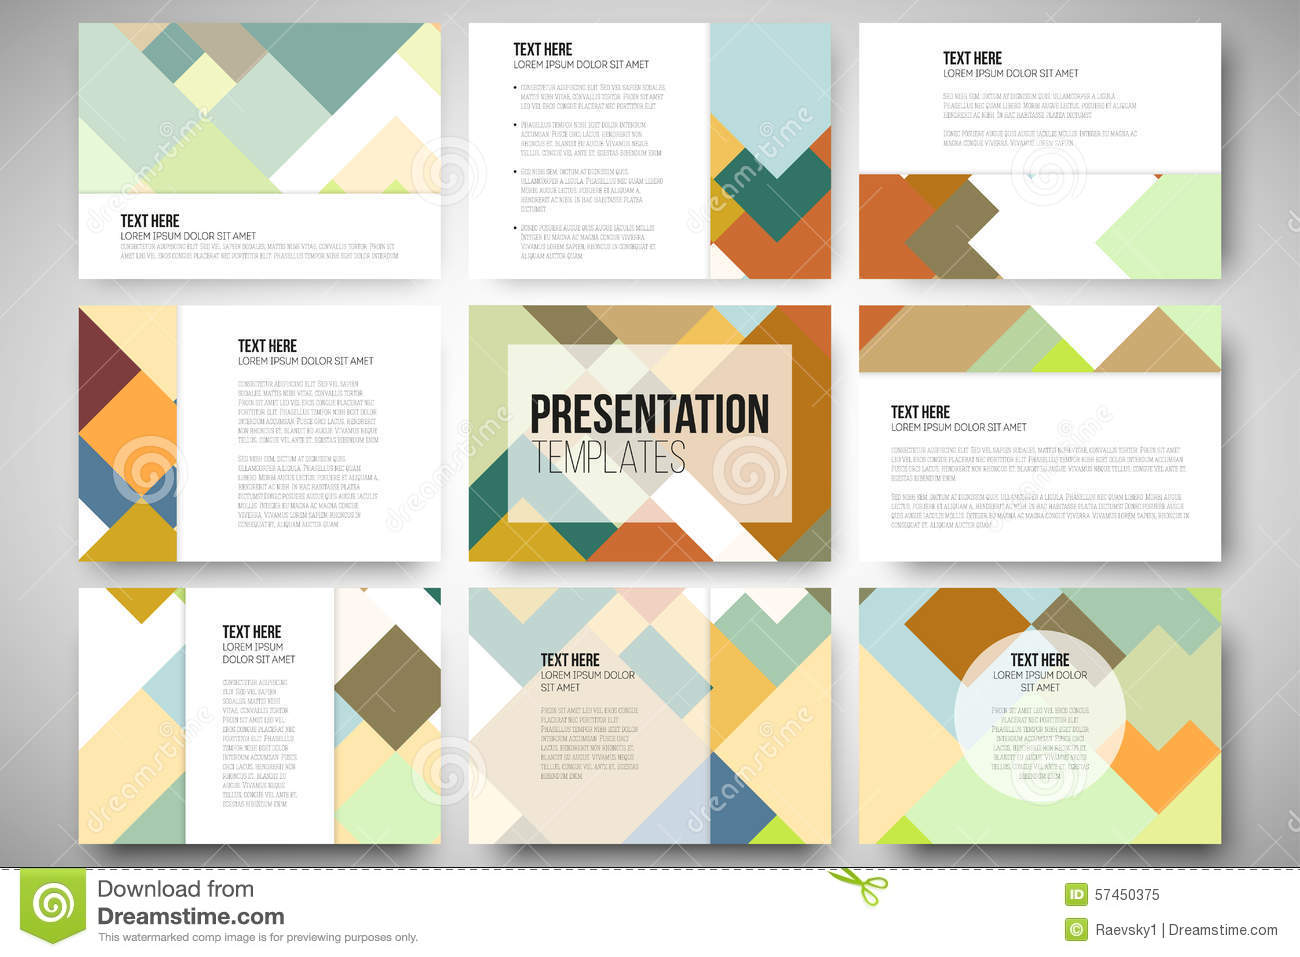 fd32a92aa6cc Set of 9 vector templates for presentation slides. Abstract colored  background